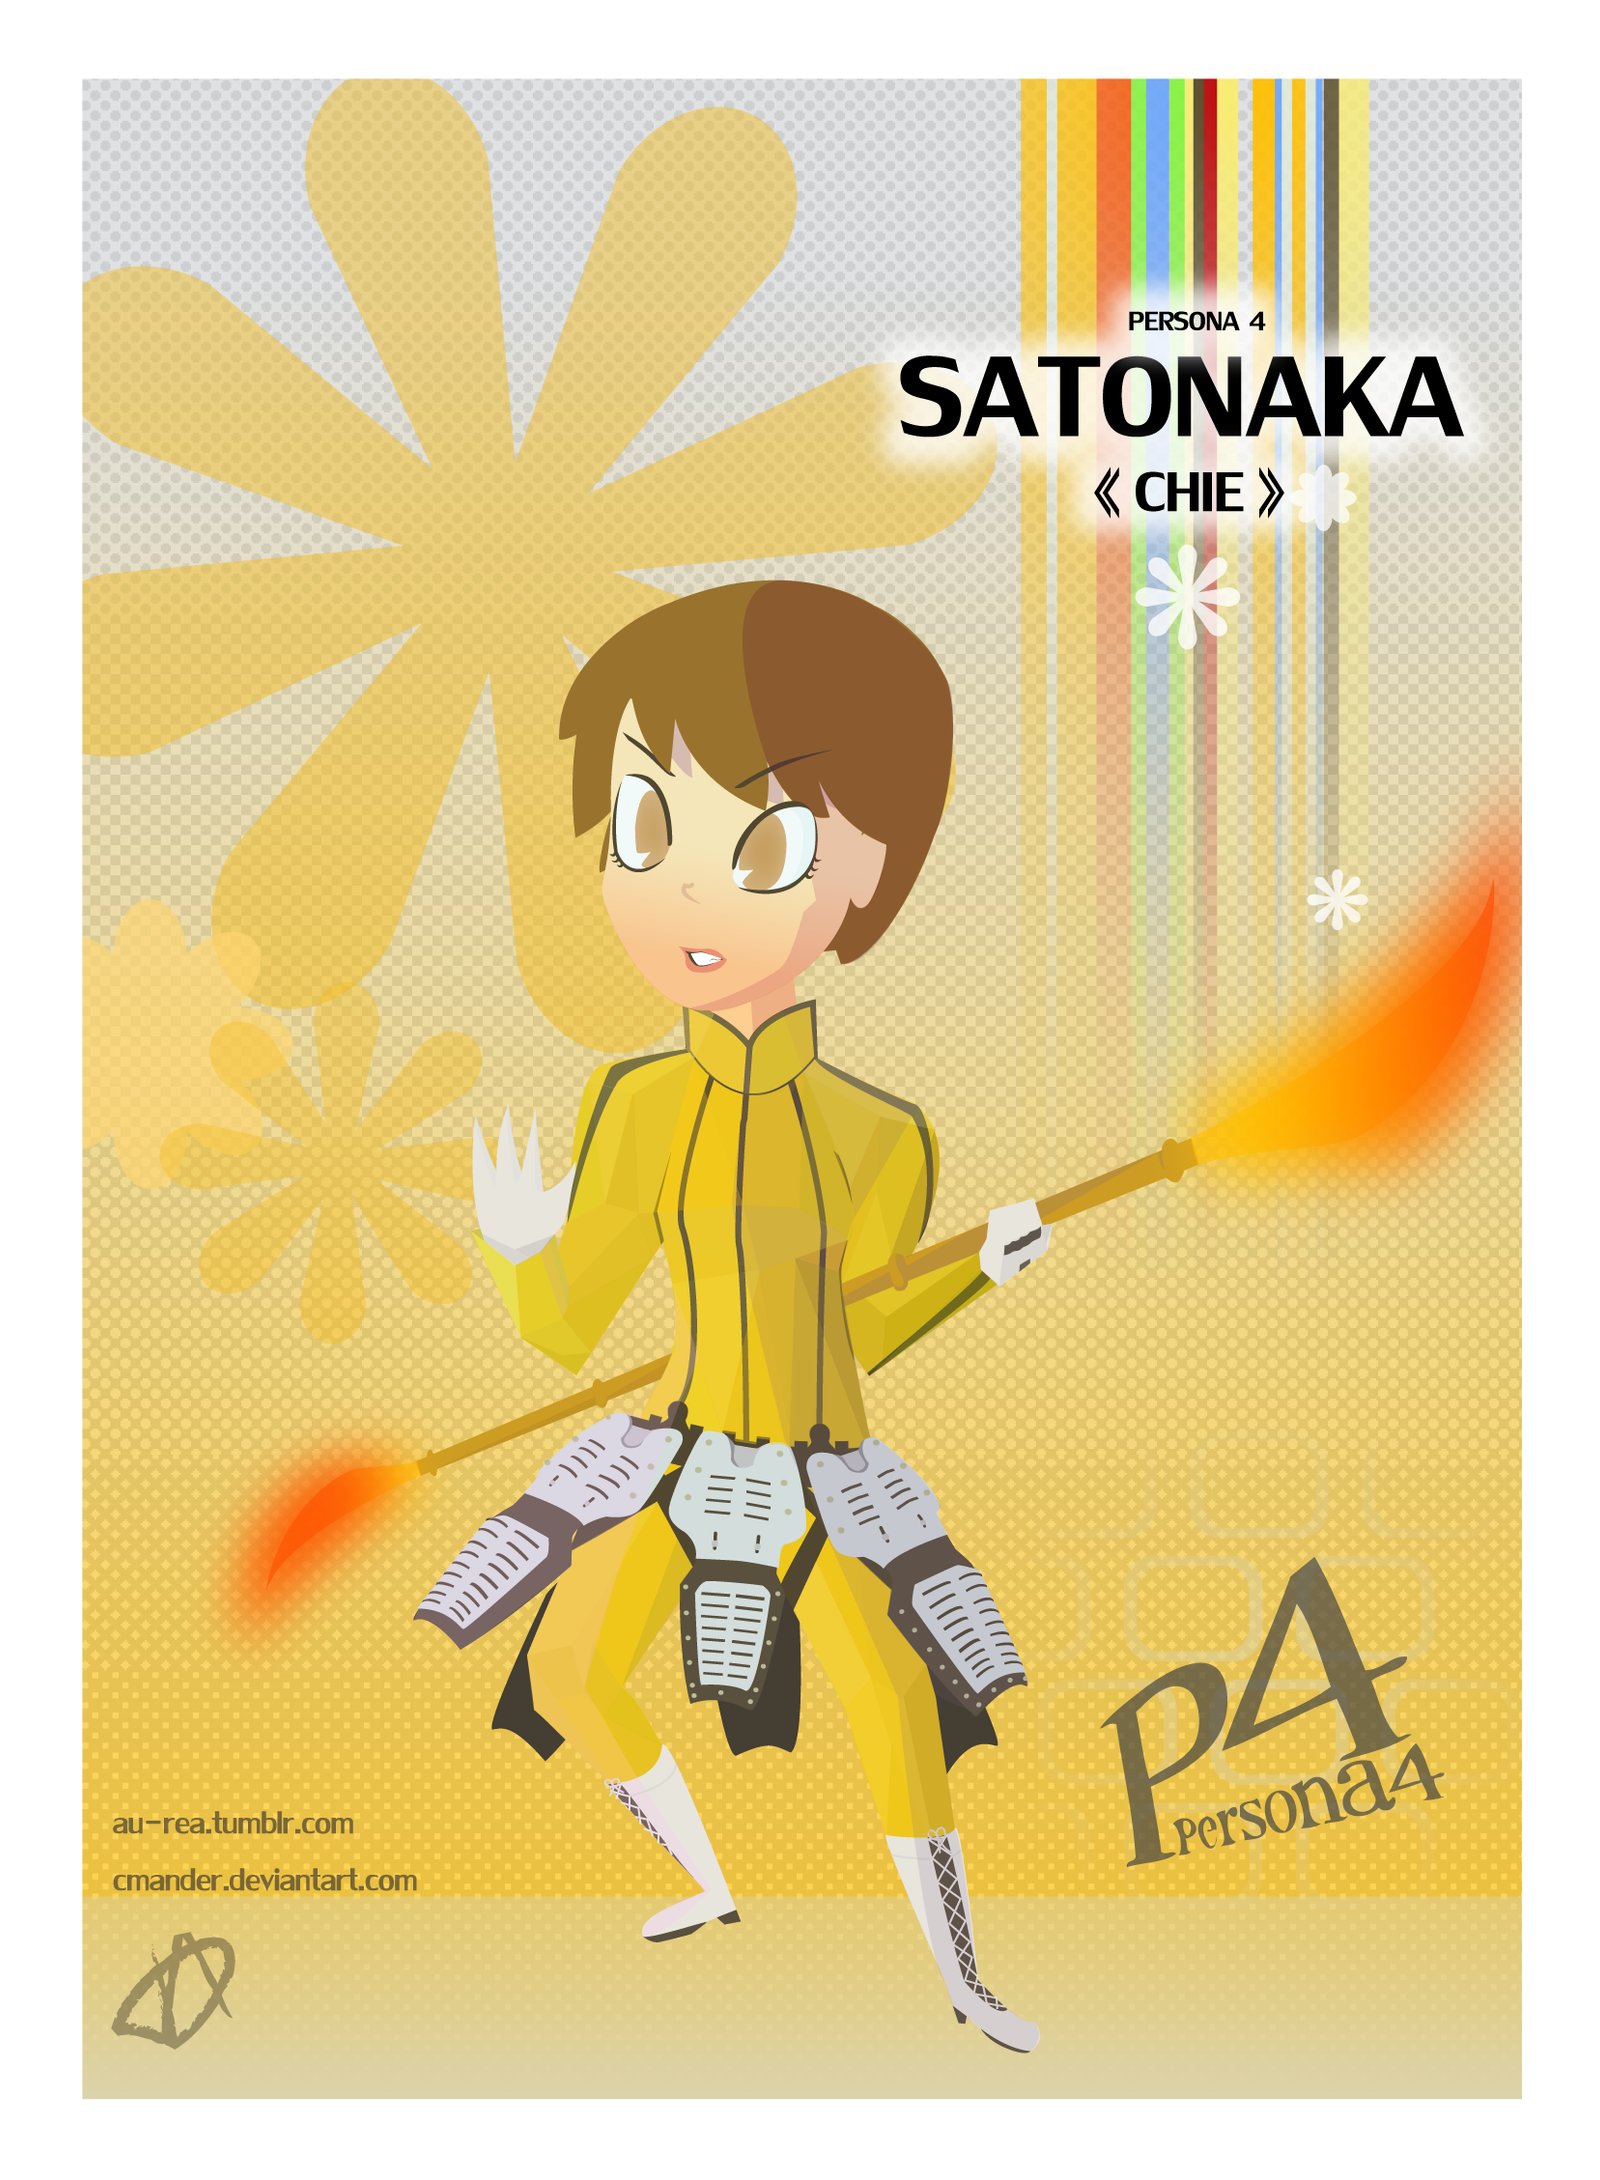 satonaka chie by cmander on deviantart